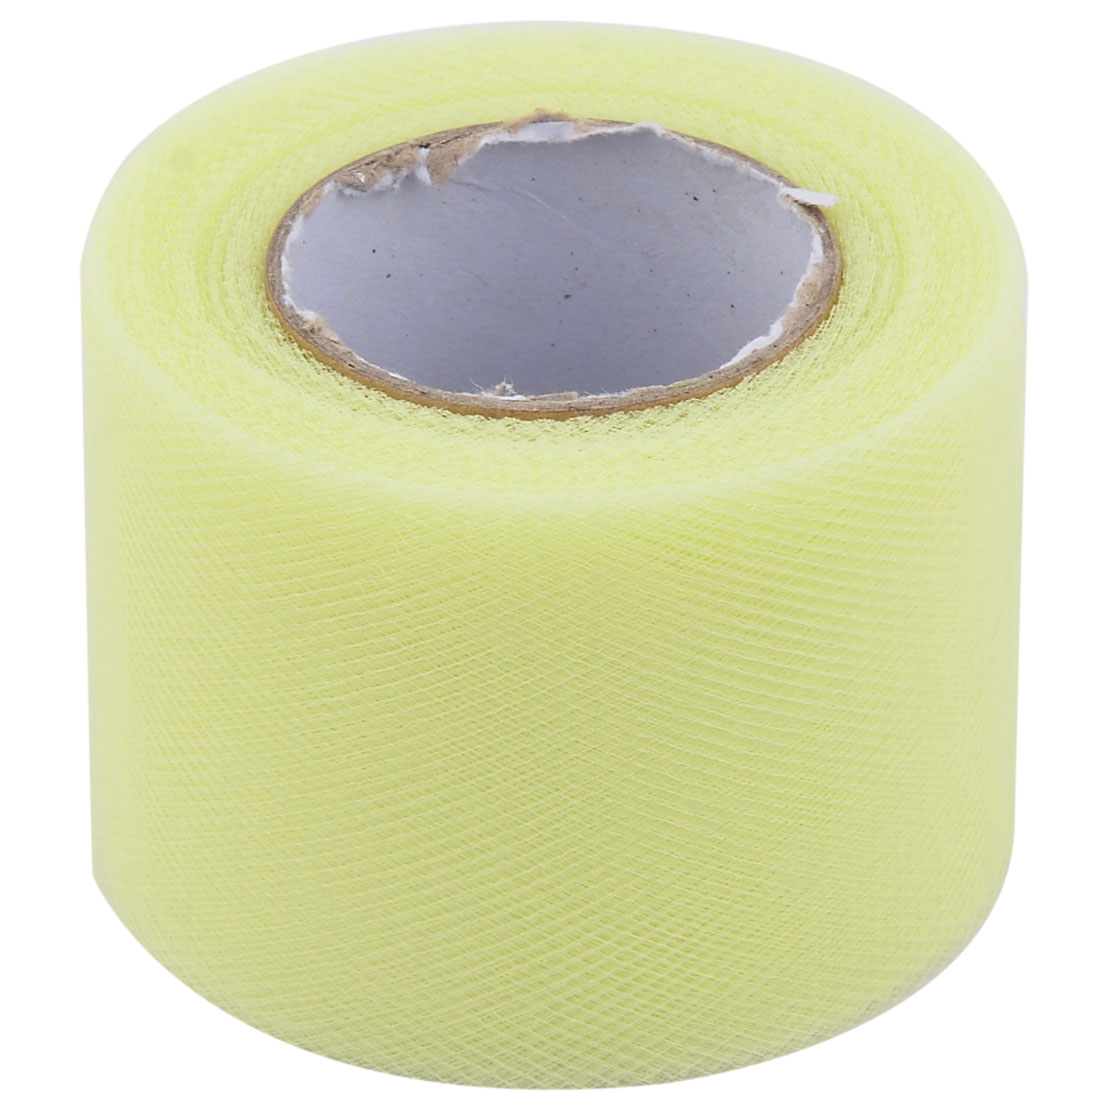 Festival Polyester Tutu Handmade Dress Decor Tulle Spool Roll Light Yellow 2 Inch x 25 Yards